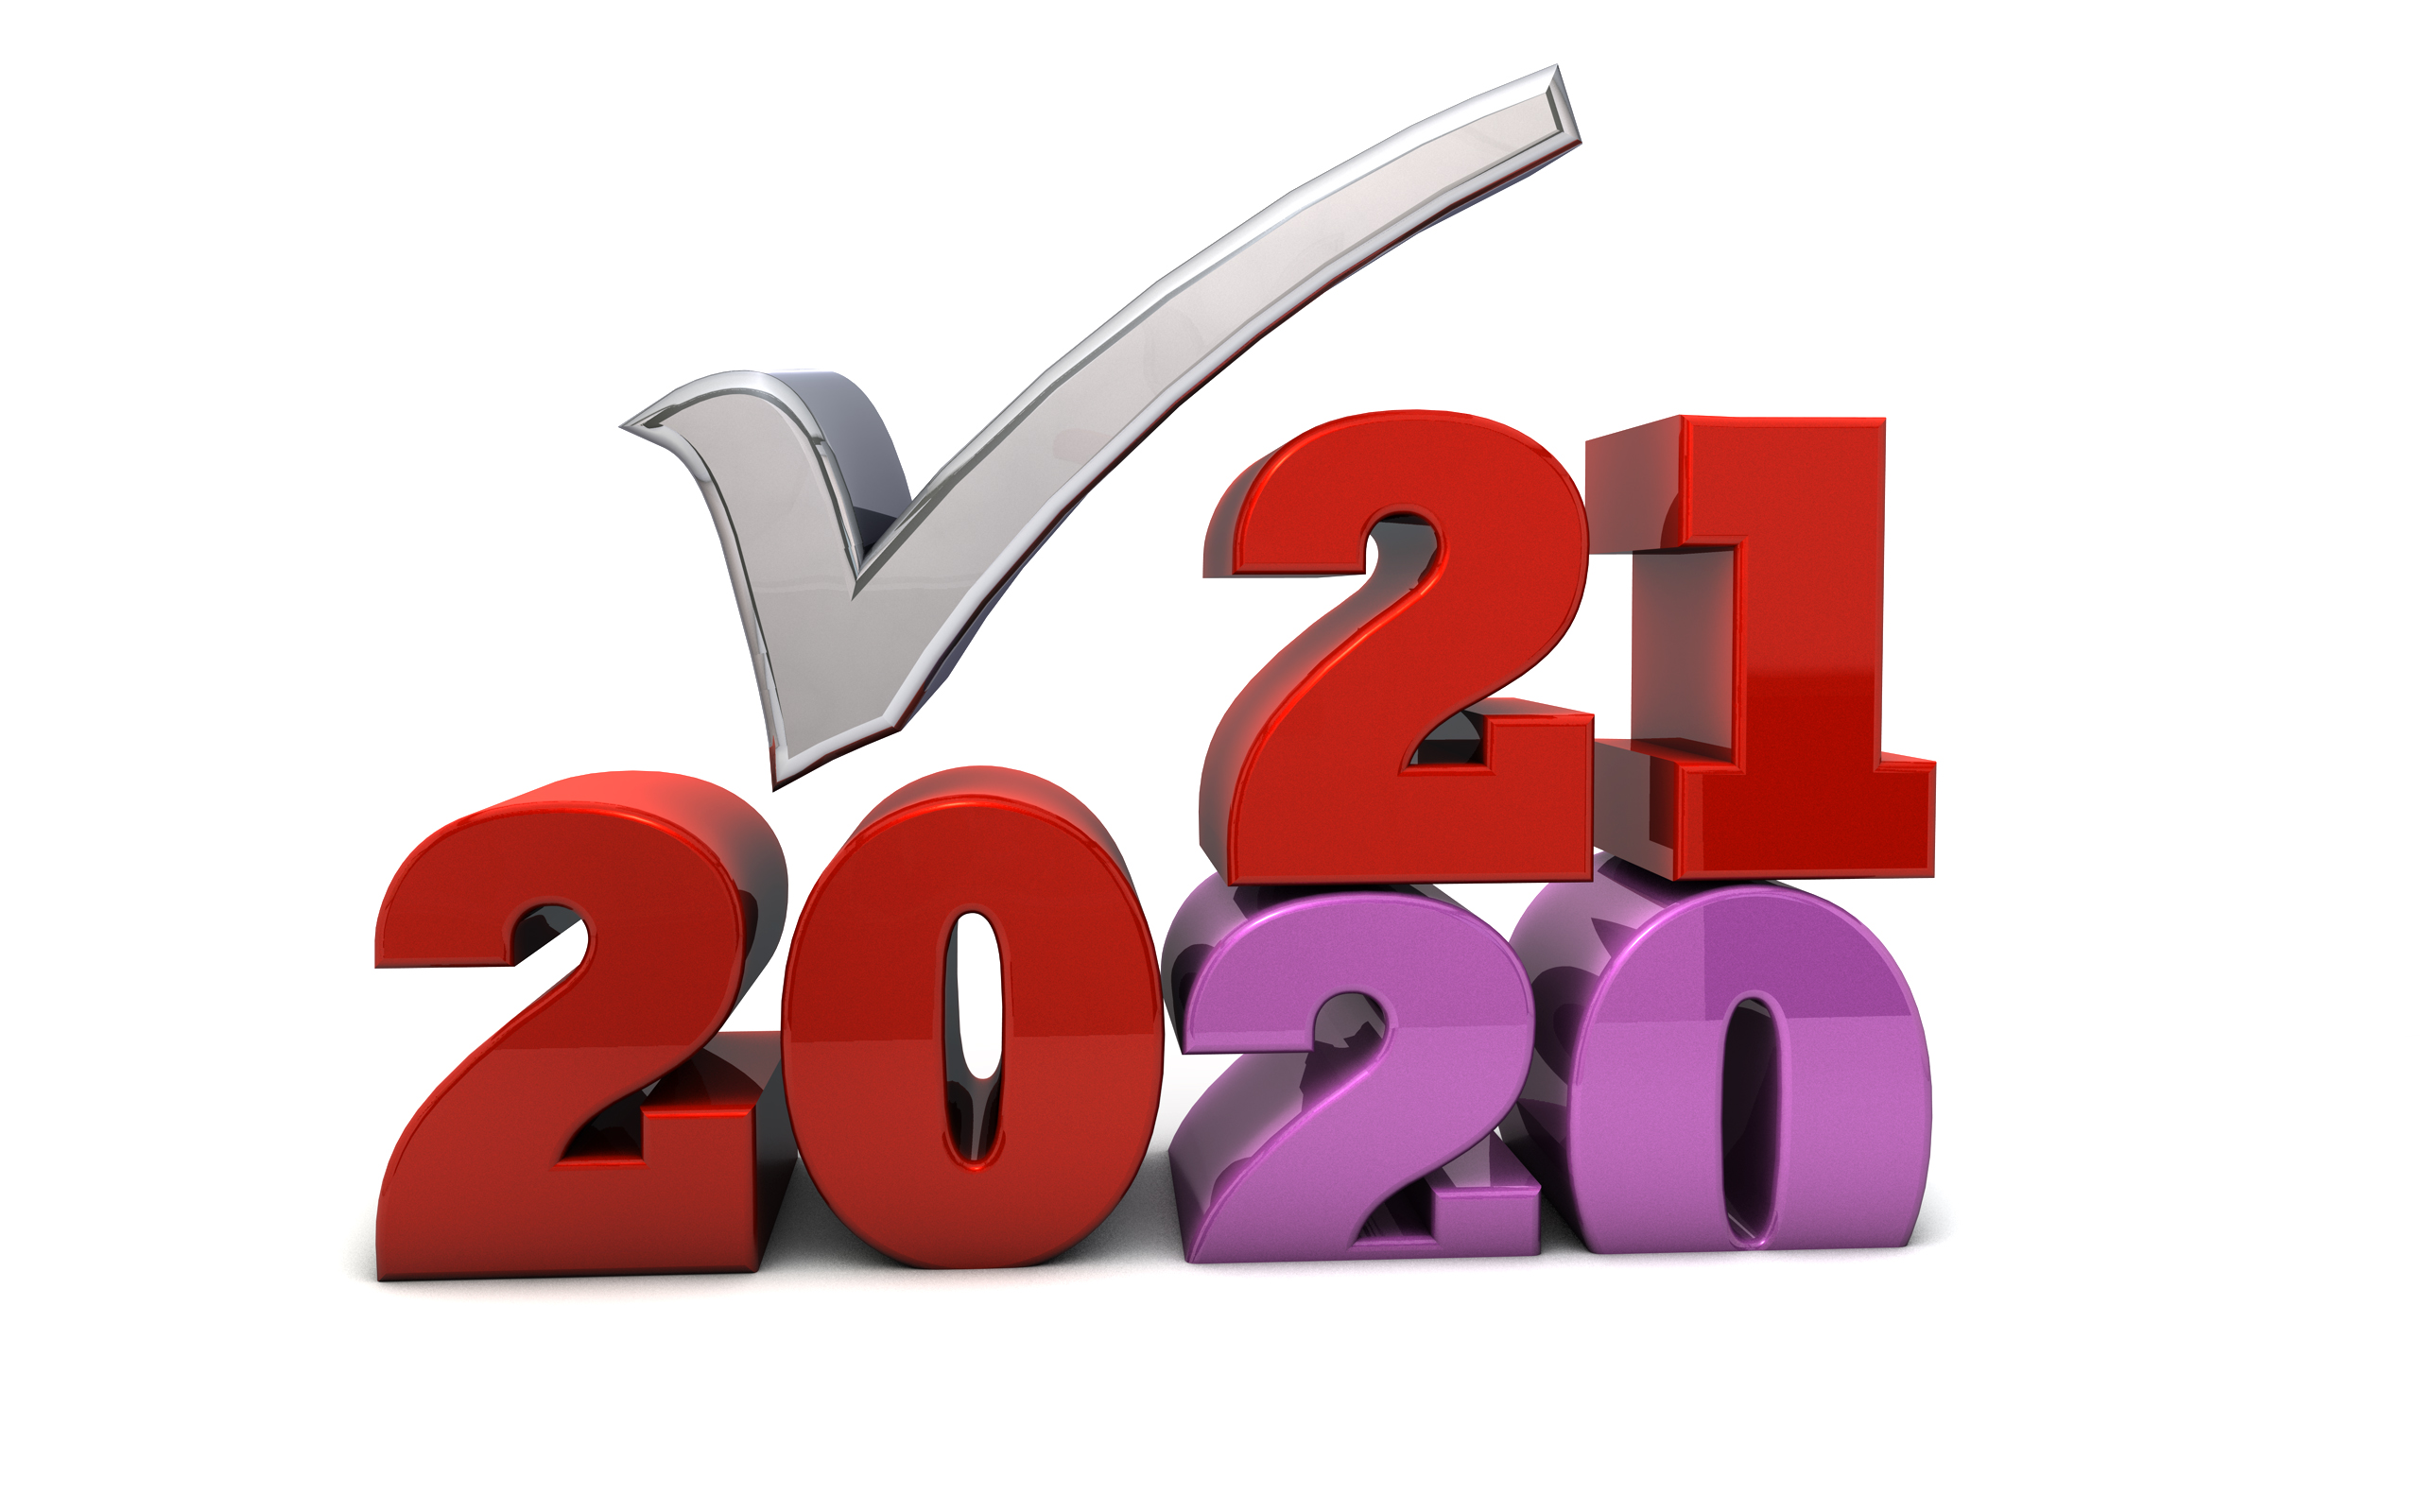 2020 into 2021 - Free Marketing Illustration